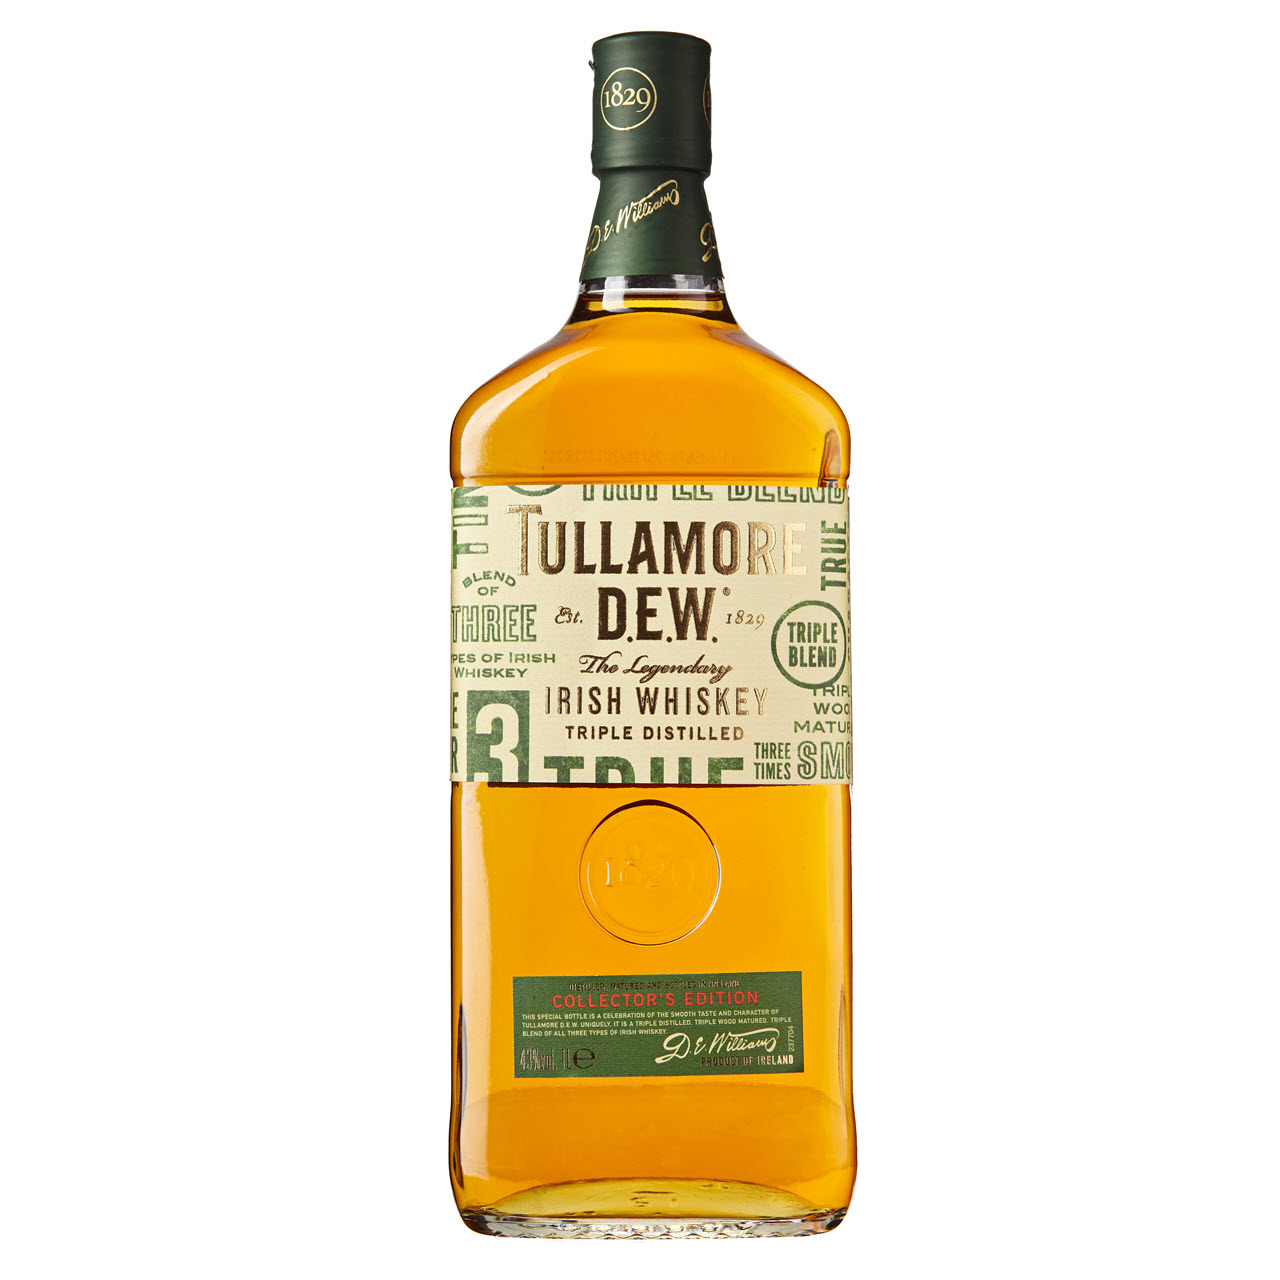 tullamore-dew-collectors-edition.jpg